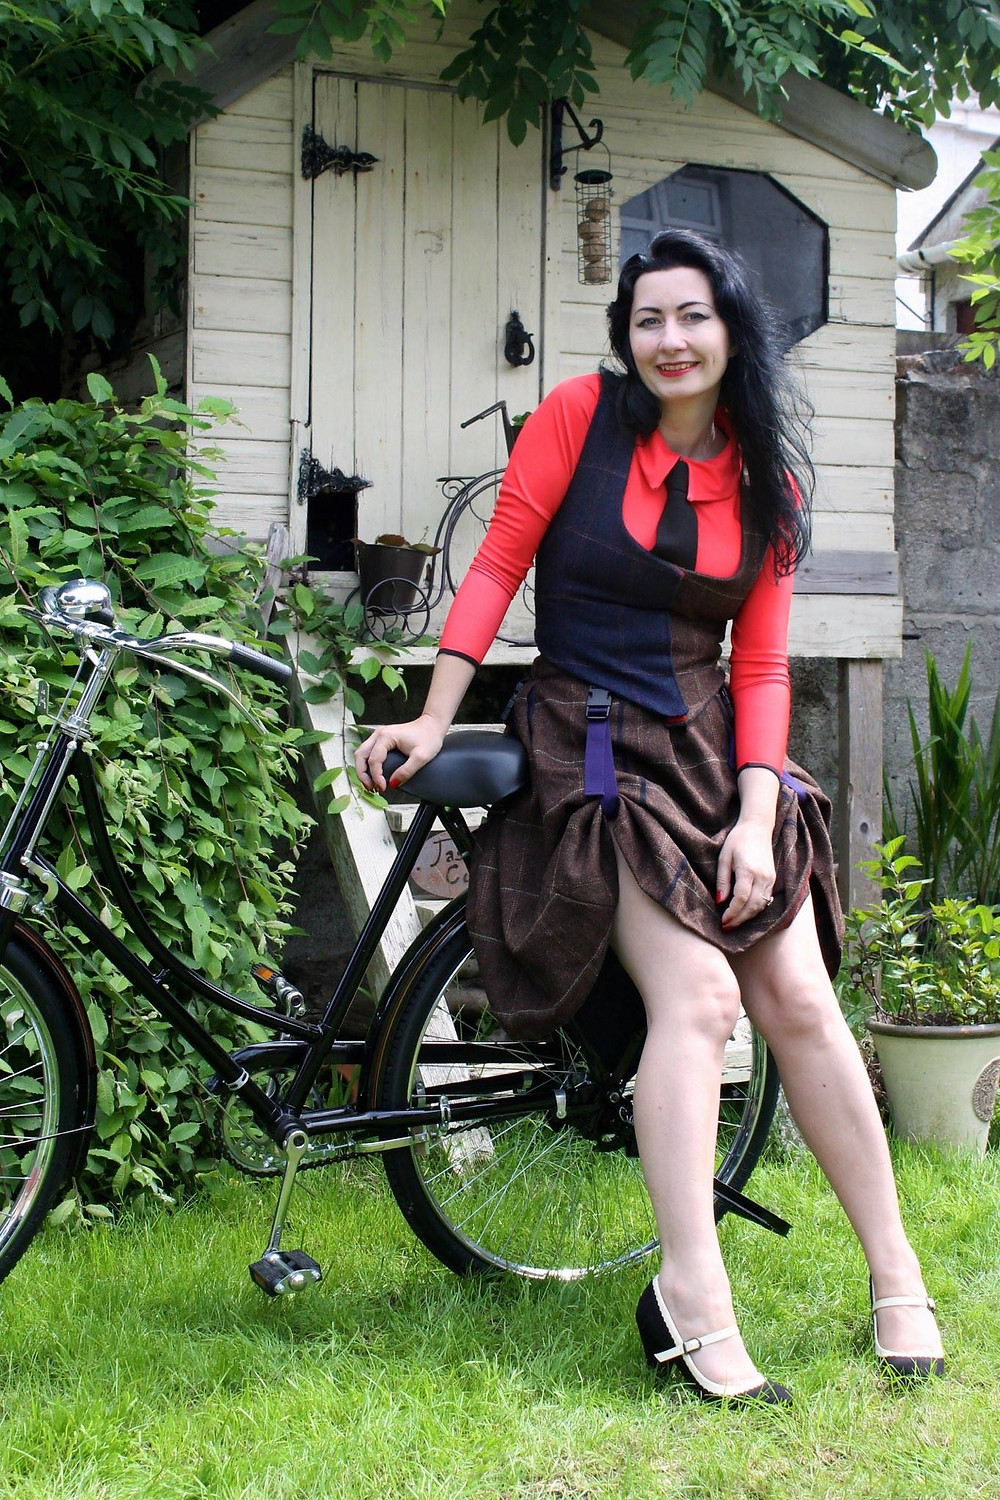 Cycling skirt, convertible. Flat seamed with pockets.